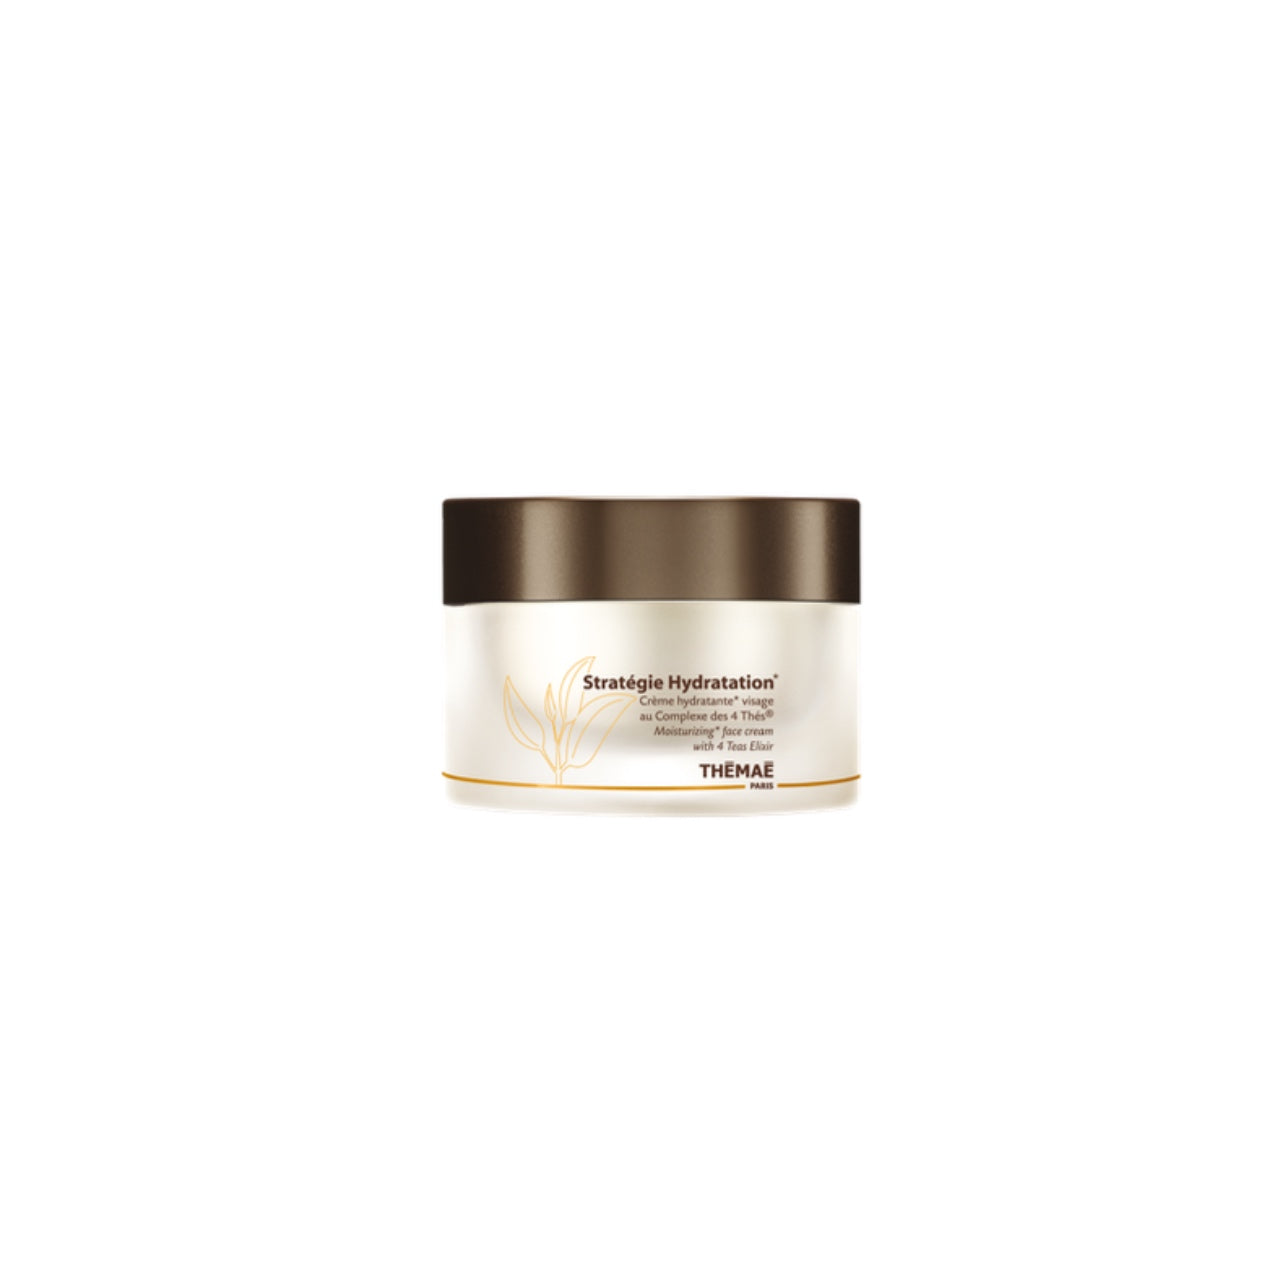 THEMAE Moisturizing face cream